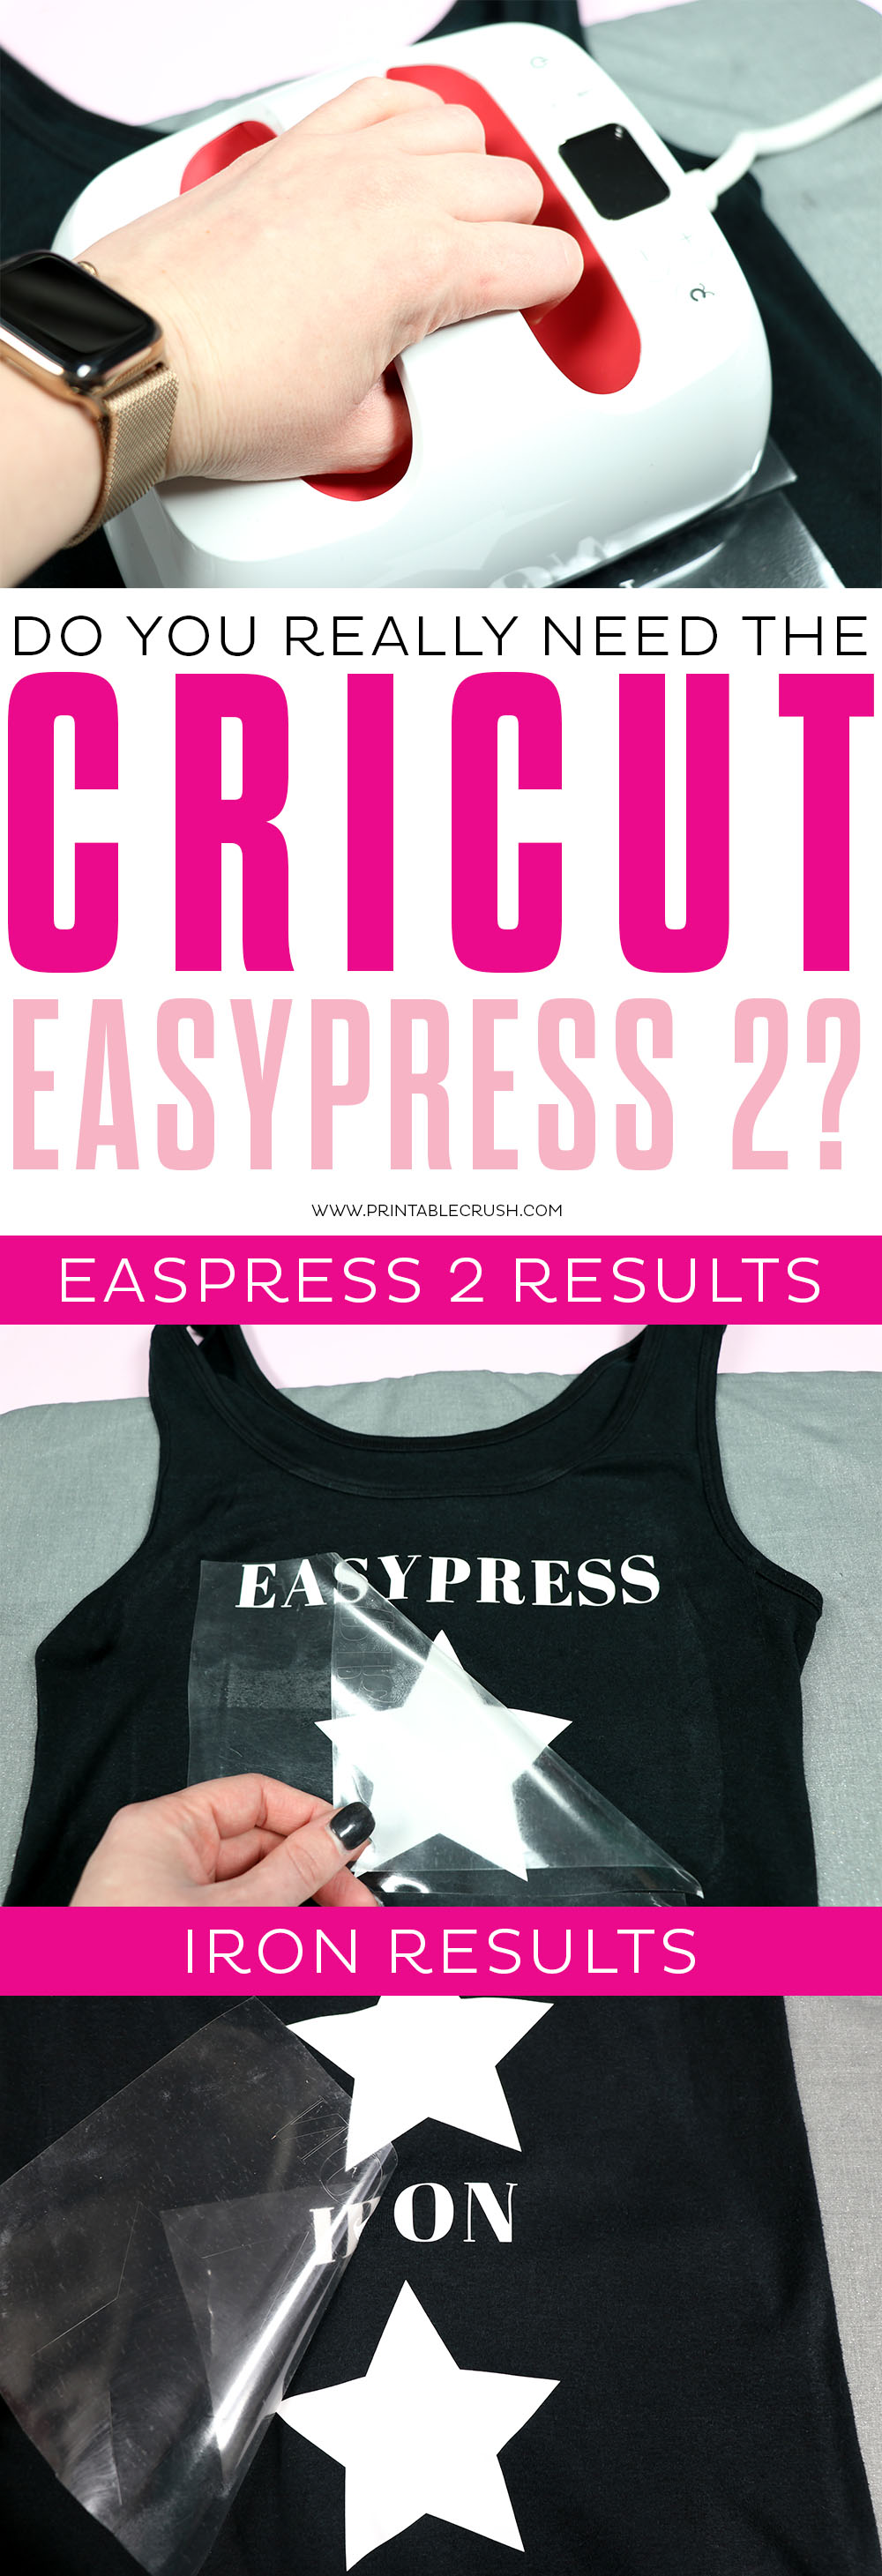 Want to know the difference between the EasyPress 2 and an iron when applying iron-on? Well, one is clearly meant to be an iron while the EasyPress 2 makes amazing iron-on tees!